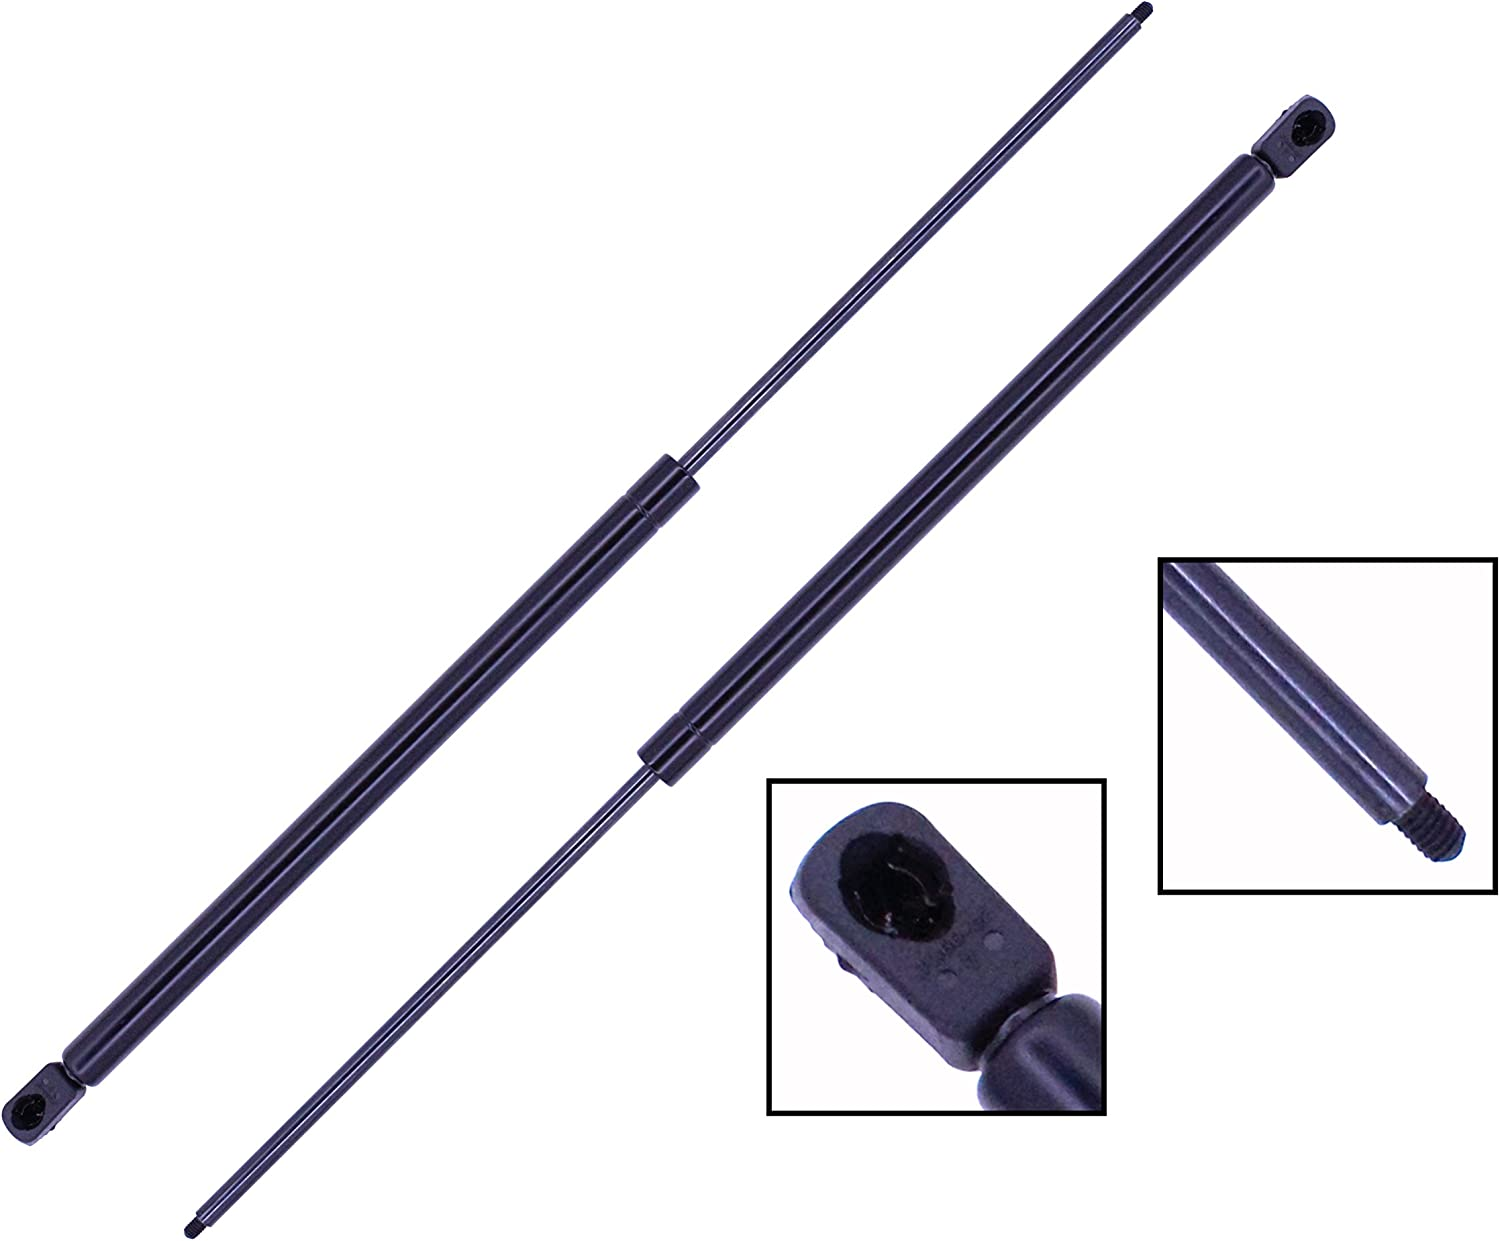 New Liftgate glass Lift Supports Pack Set of 2 Rear Driver /& Passenger Side